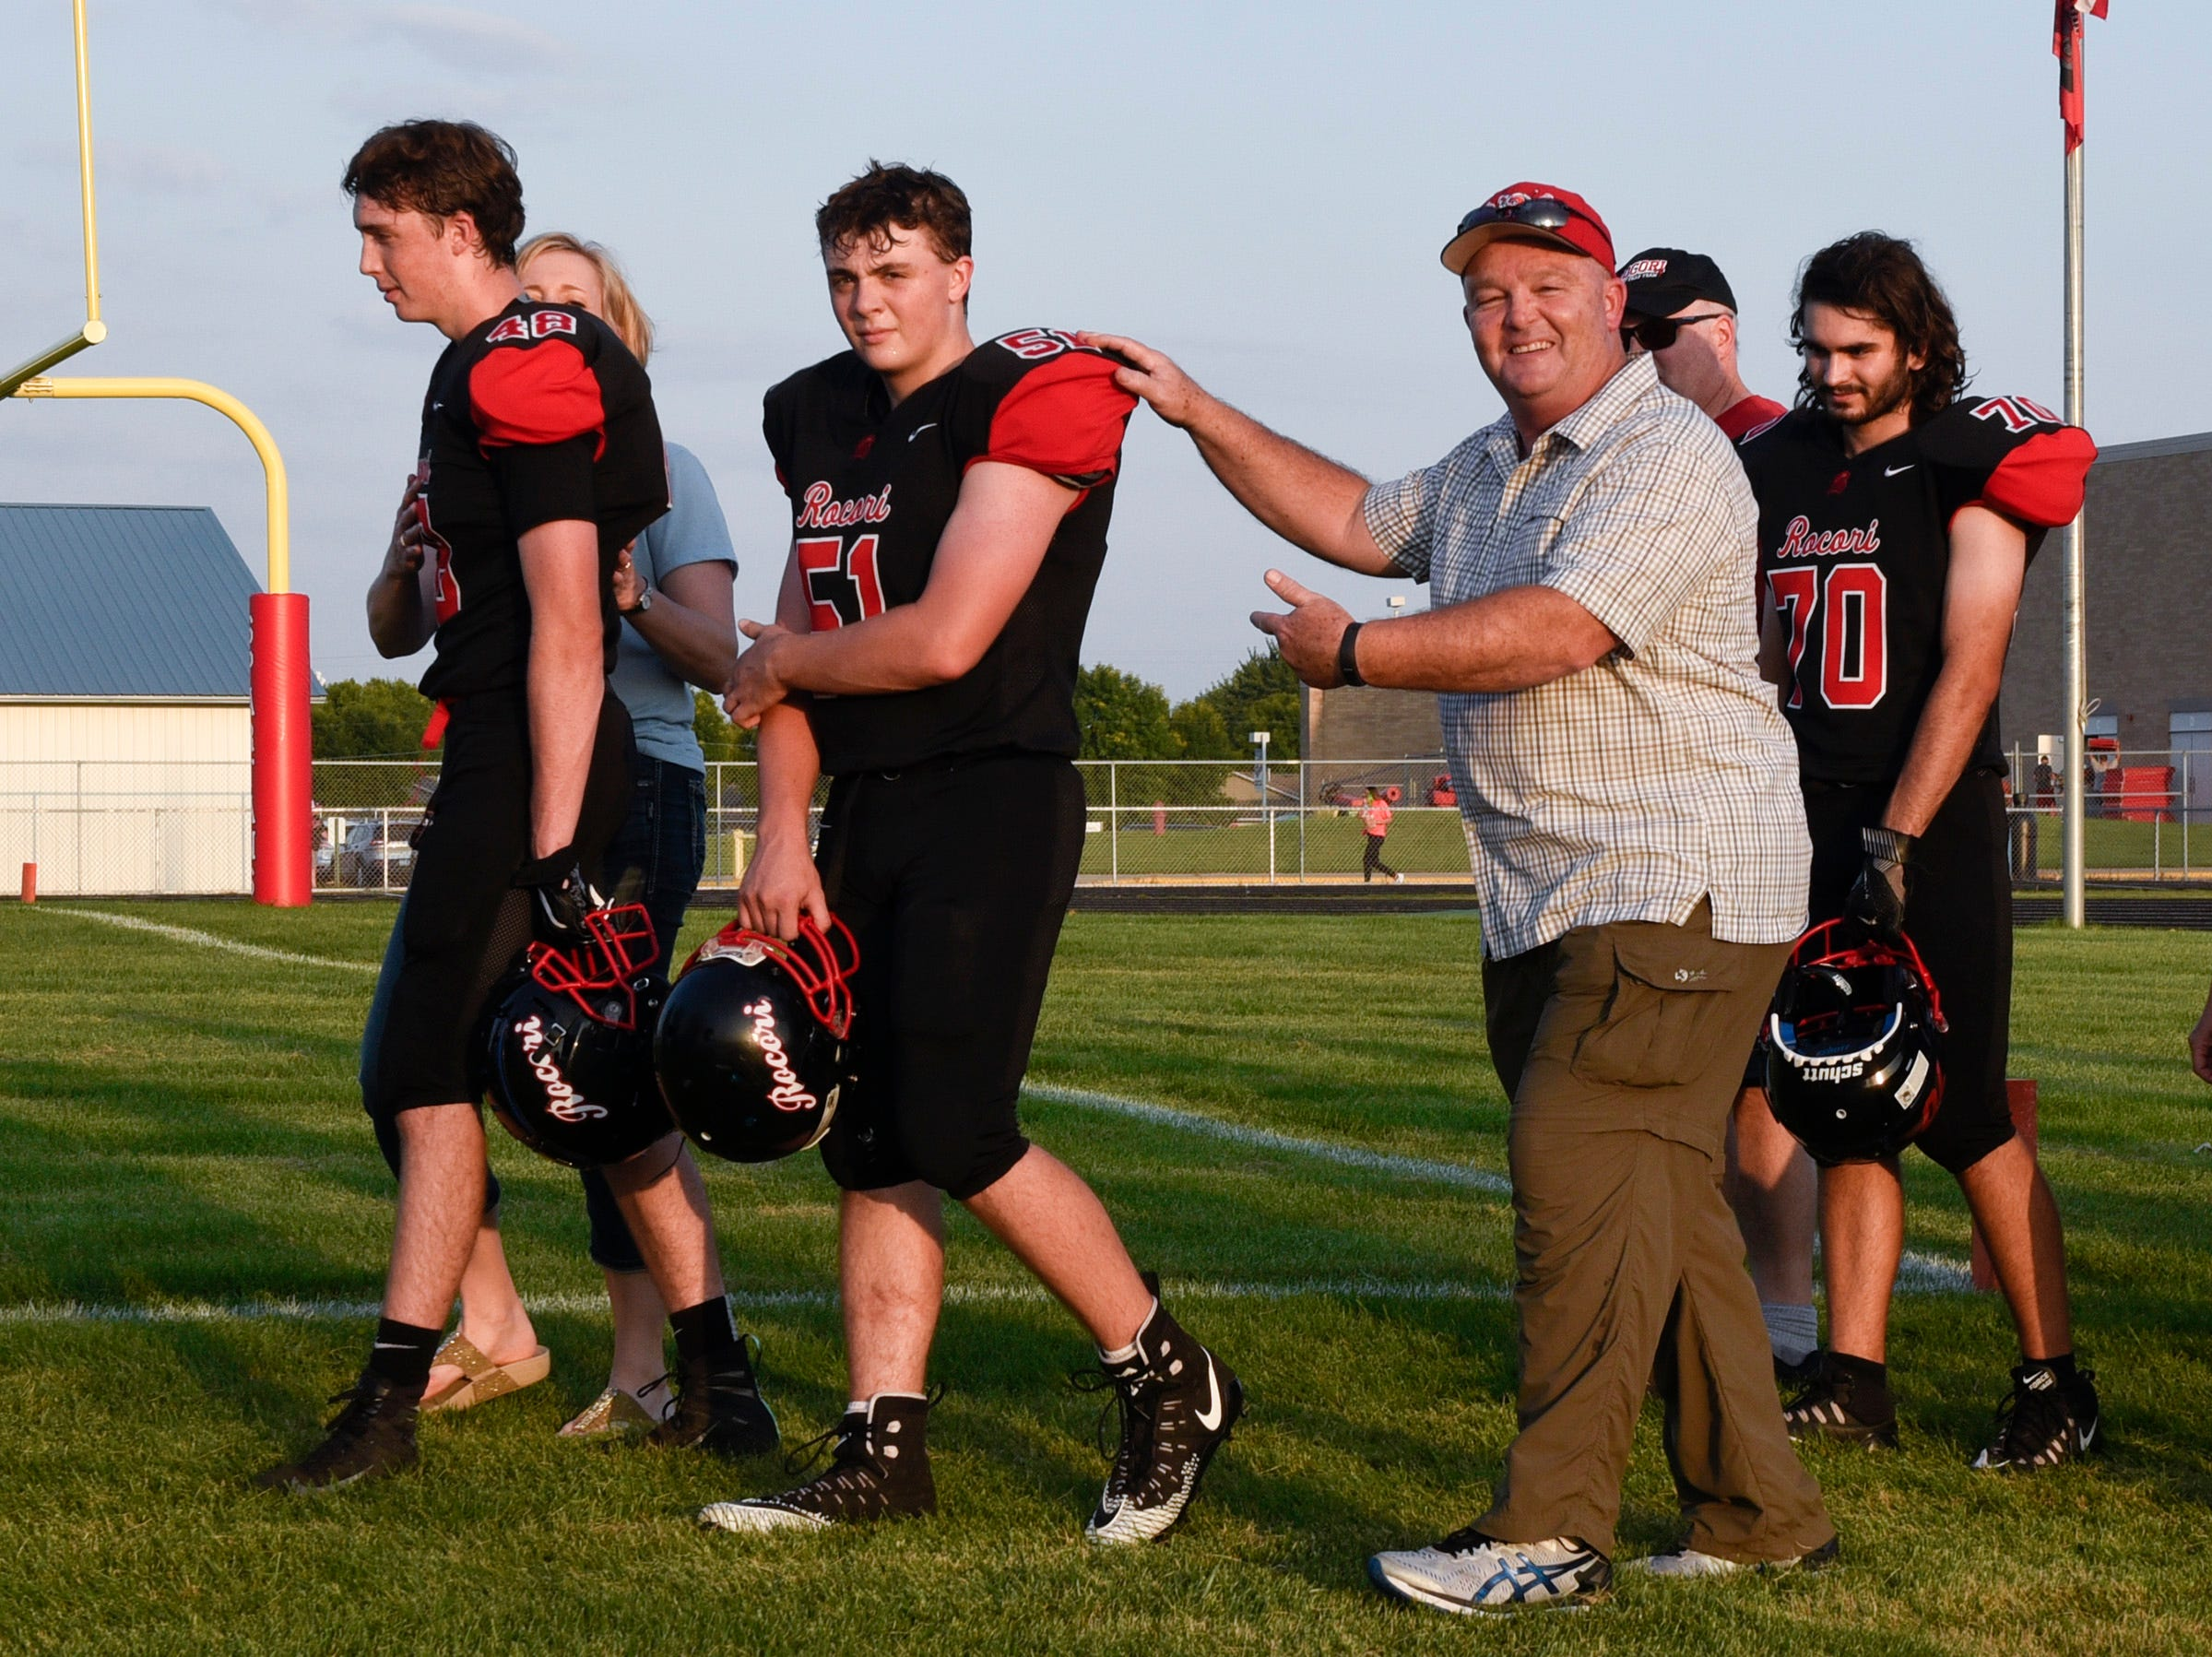 ROCORI's Nathaniel Venable and his dad Barry are introduced during parents night Friday, Sept. 14, in Cold Spring.